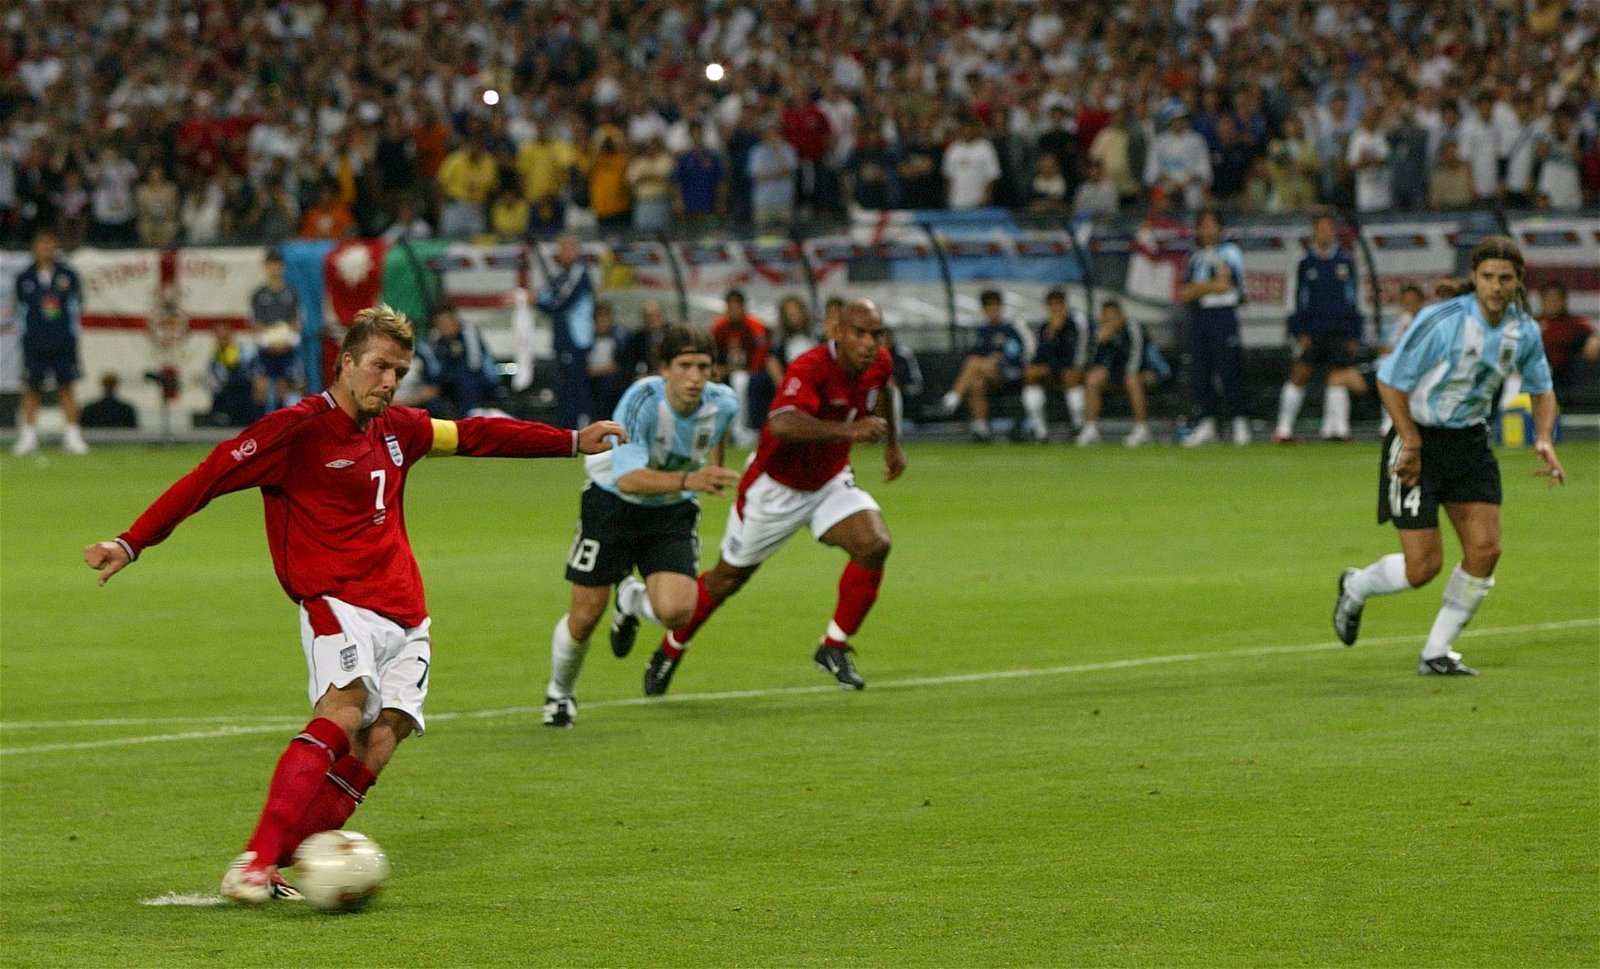 England's greatest World Cup moments: David Beckham kills the ghost that haunted him